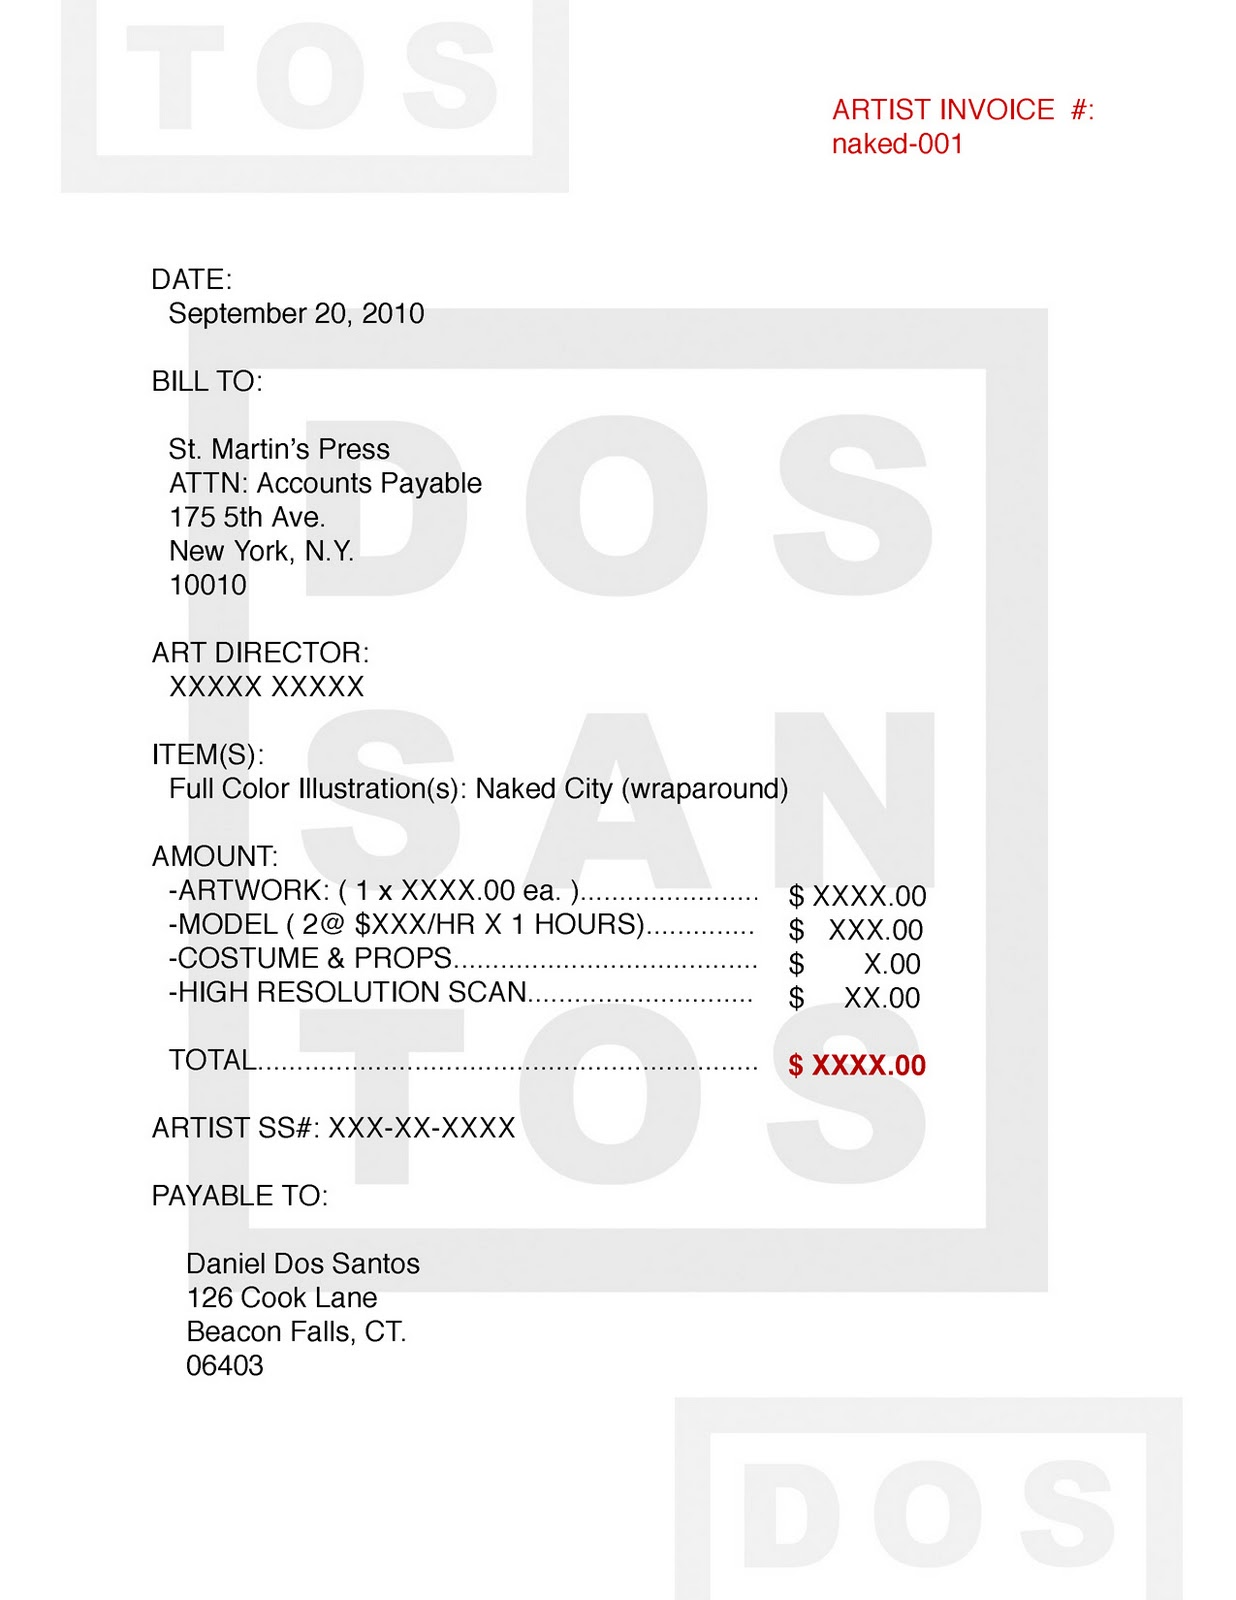 Opposenewapstandardsus  Personable Muddy Colors Invoices With Inspiring I Believe That This Format Contains All The Pertinent Information That A Good Invoice Should Have And Can Serve As A Decent Template For Your Own With Amusing Receipt Copy Sample Also Online Receipt For Lic Premium In Addition Receipts And Payments Format And Sales Receipt Software As Well As Free Receipt Organizer Software Additionally Tenancy Deposit Receipt From Muddycolorsblogspotcom With Opposenewapstandardsus  Inspiring Muddy Colors Invoices With Amusing I Believe That This Format Contains All The Pertinent Information That A Good Invoice Should Have And Can Serve As A Decent Template For Your Own And Personable Receipt Copy Sample Also Online Receipt For Lic Premium In Addition Receipts And Payments Format From Muddycolorsblogspotcom